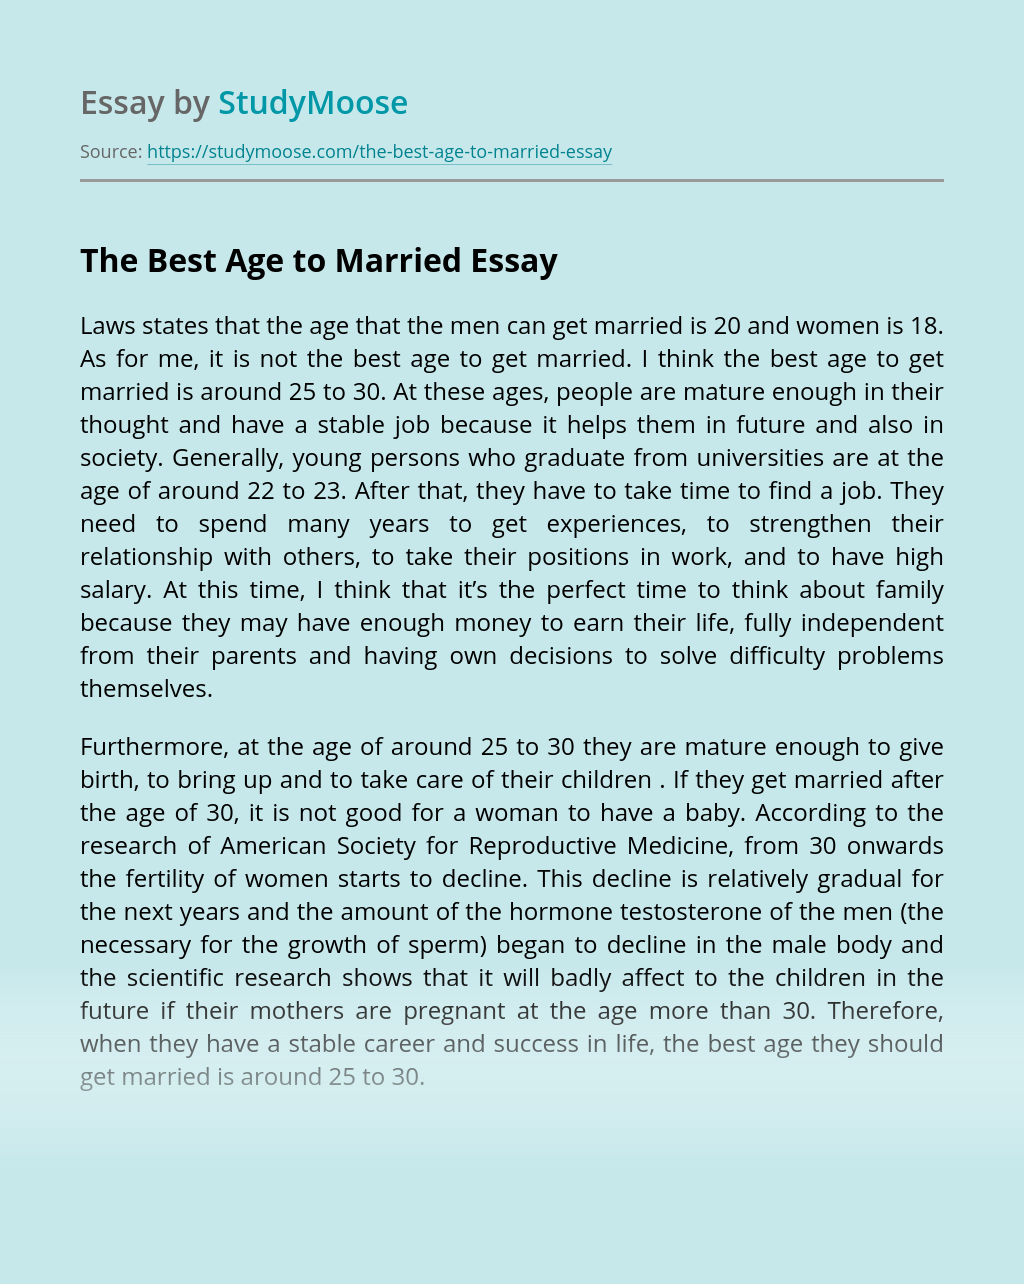 The Best Age to Married